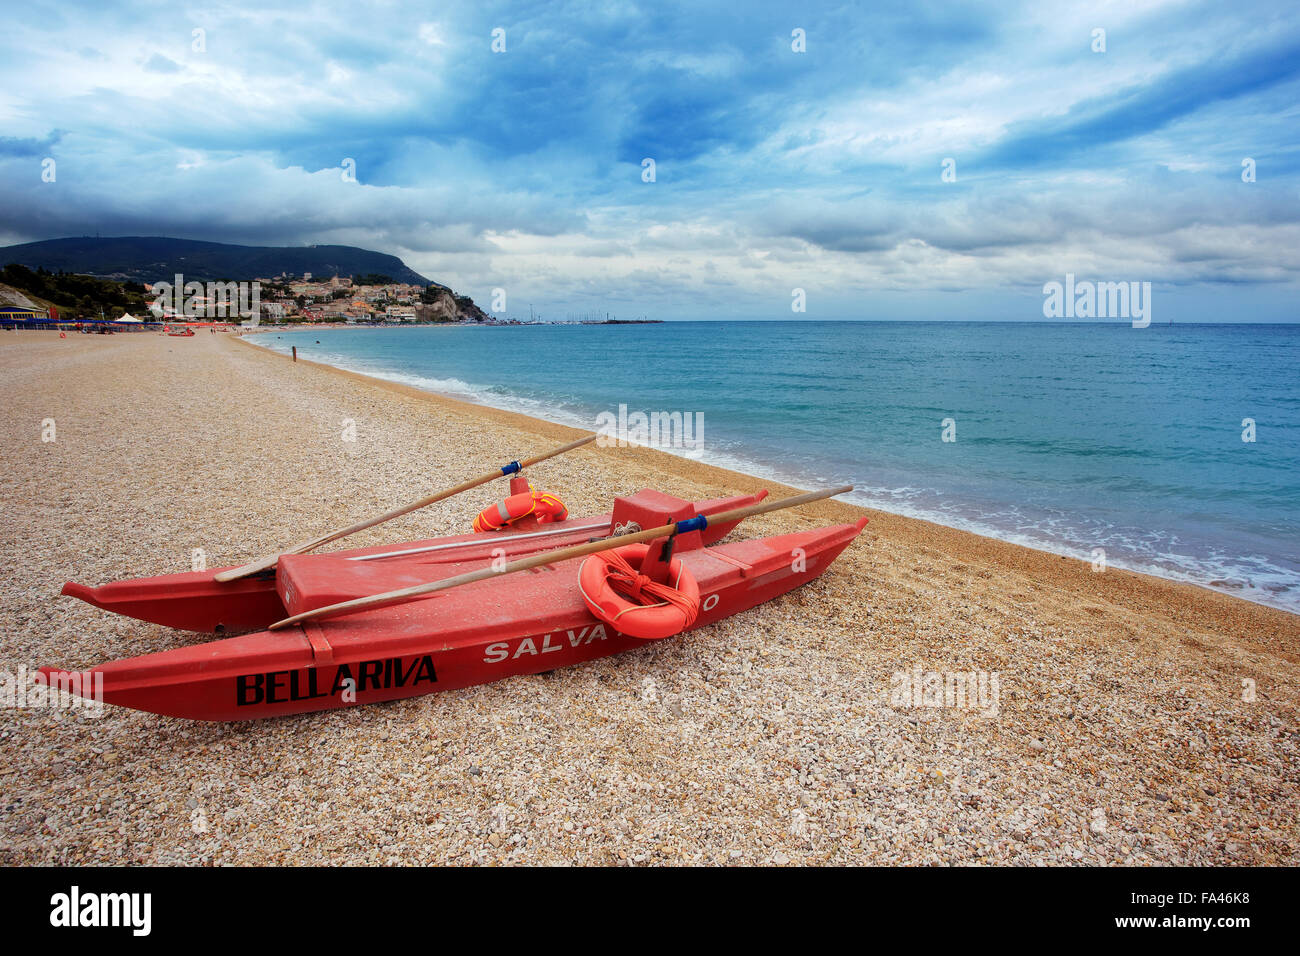 A beach with a watercraft - Stock Image